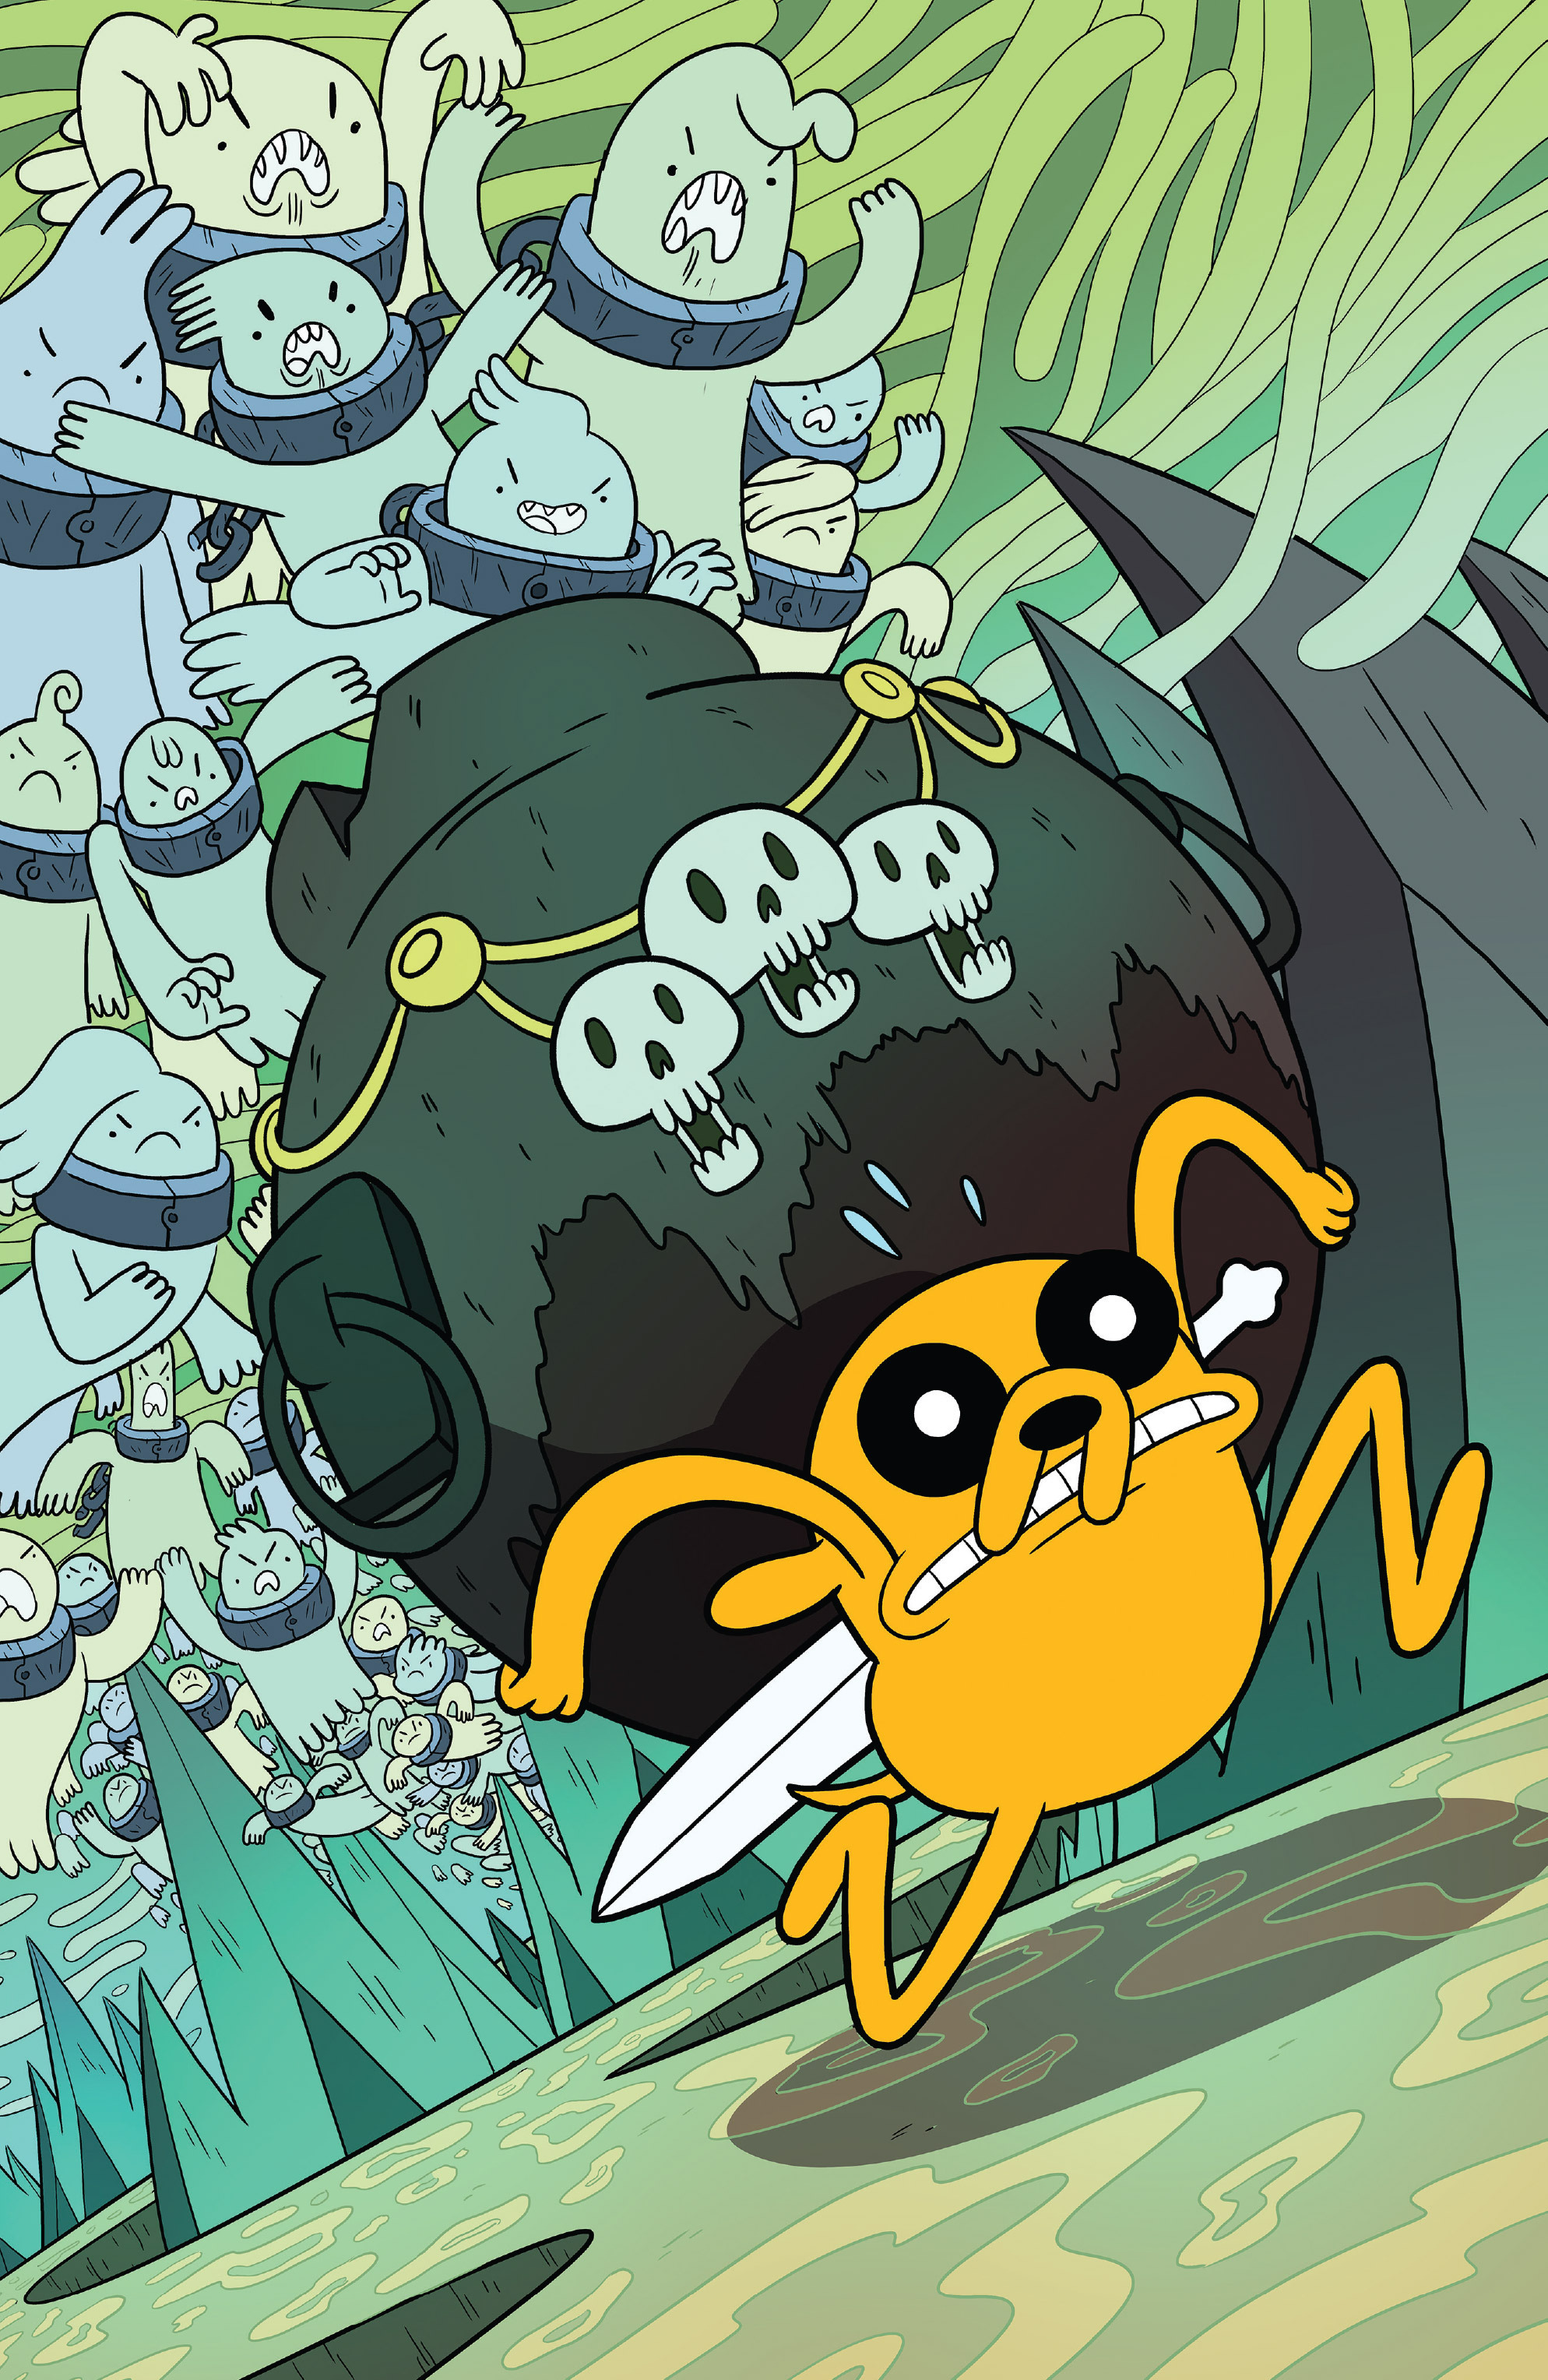 Read online Adventure Time comic -  Issue #53 - 18